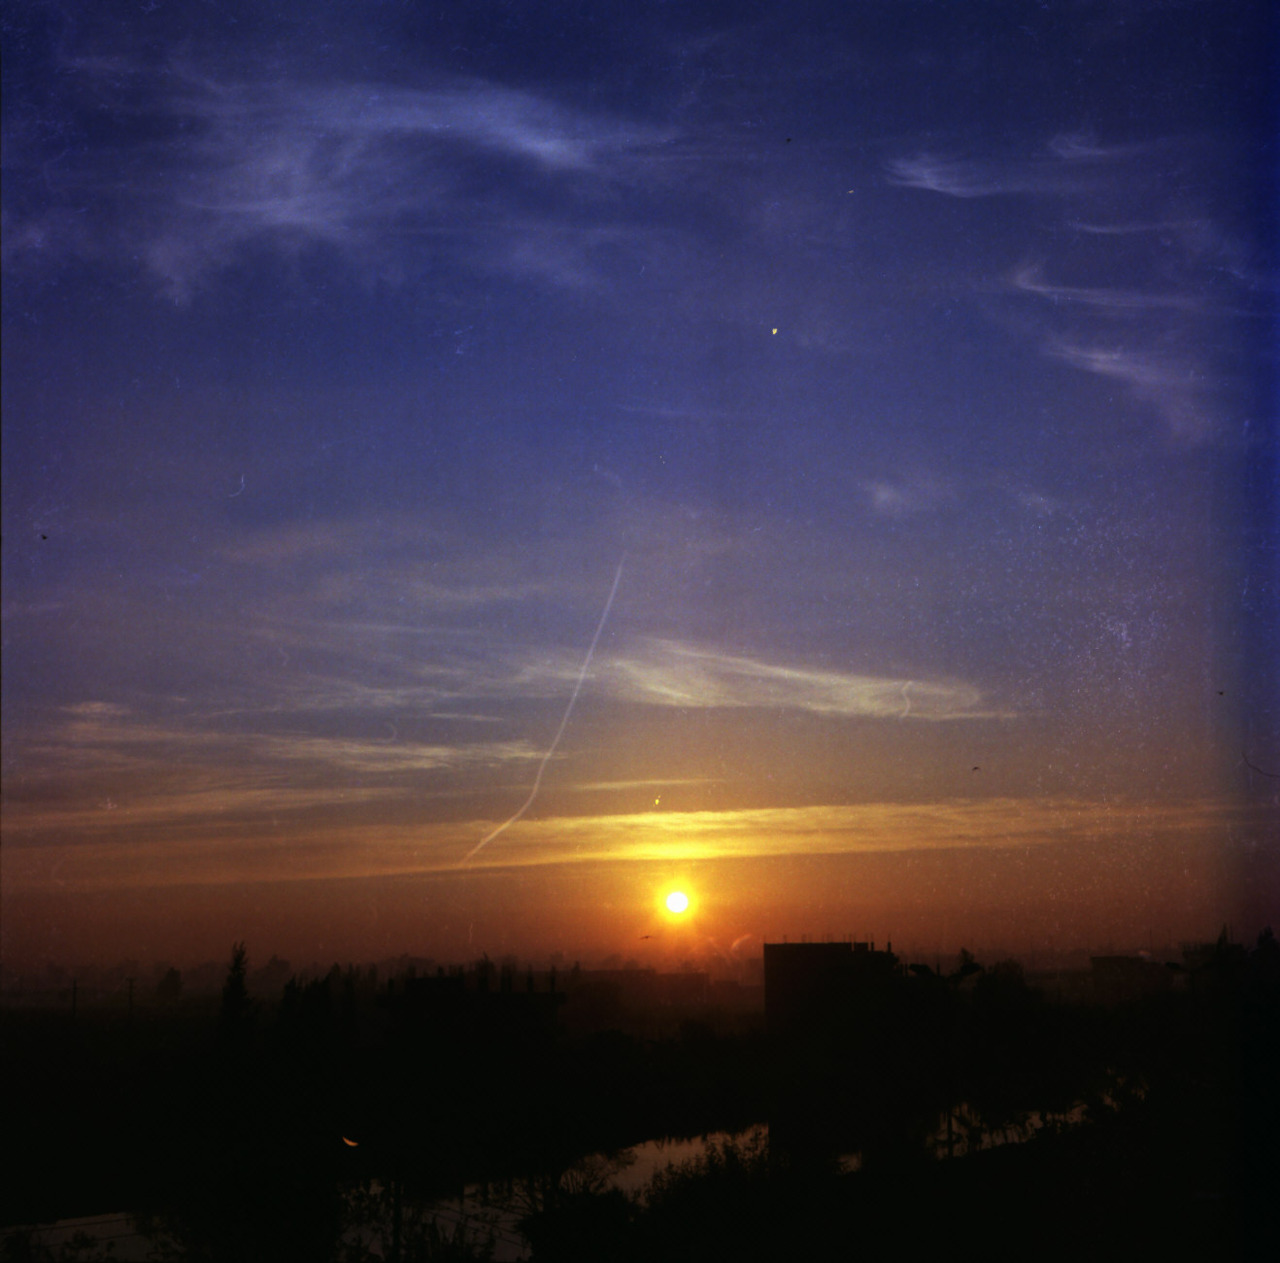 SUNRISE - TANTA - EGYPT flexaret automat - Lens Meopta Belar 3.5/80 - Portra 160 vc Wednesday July 20, 2011